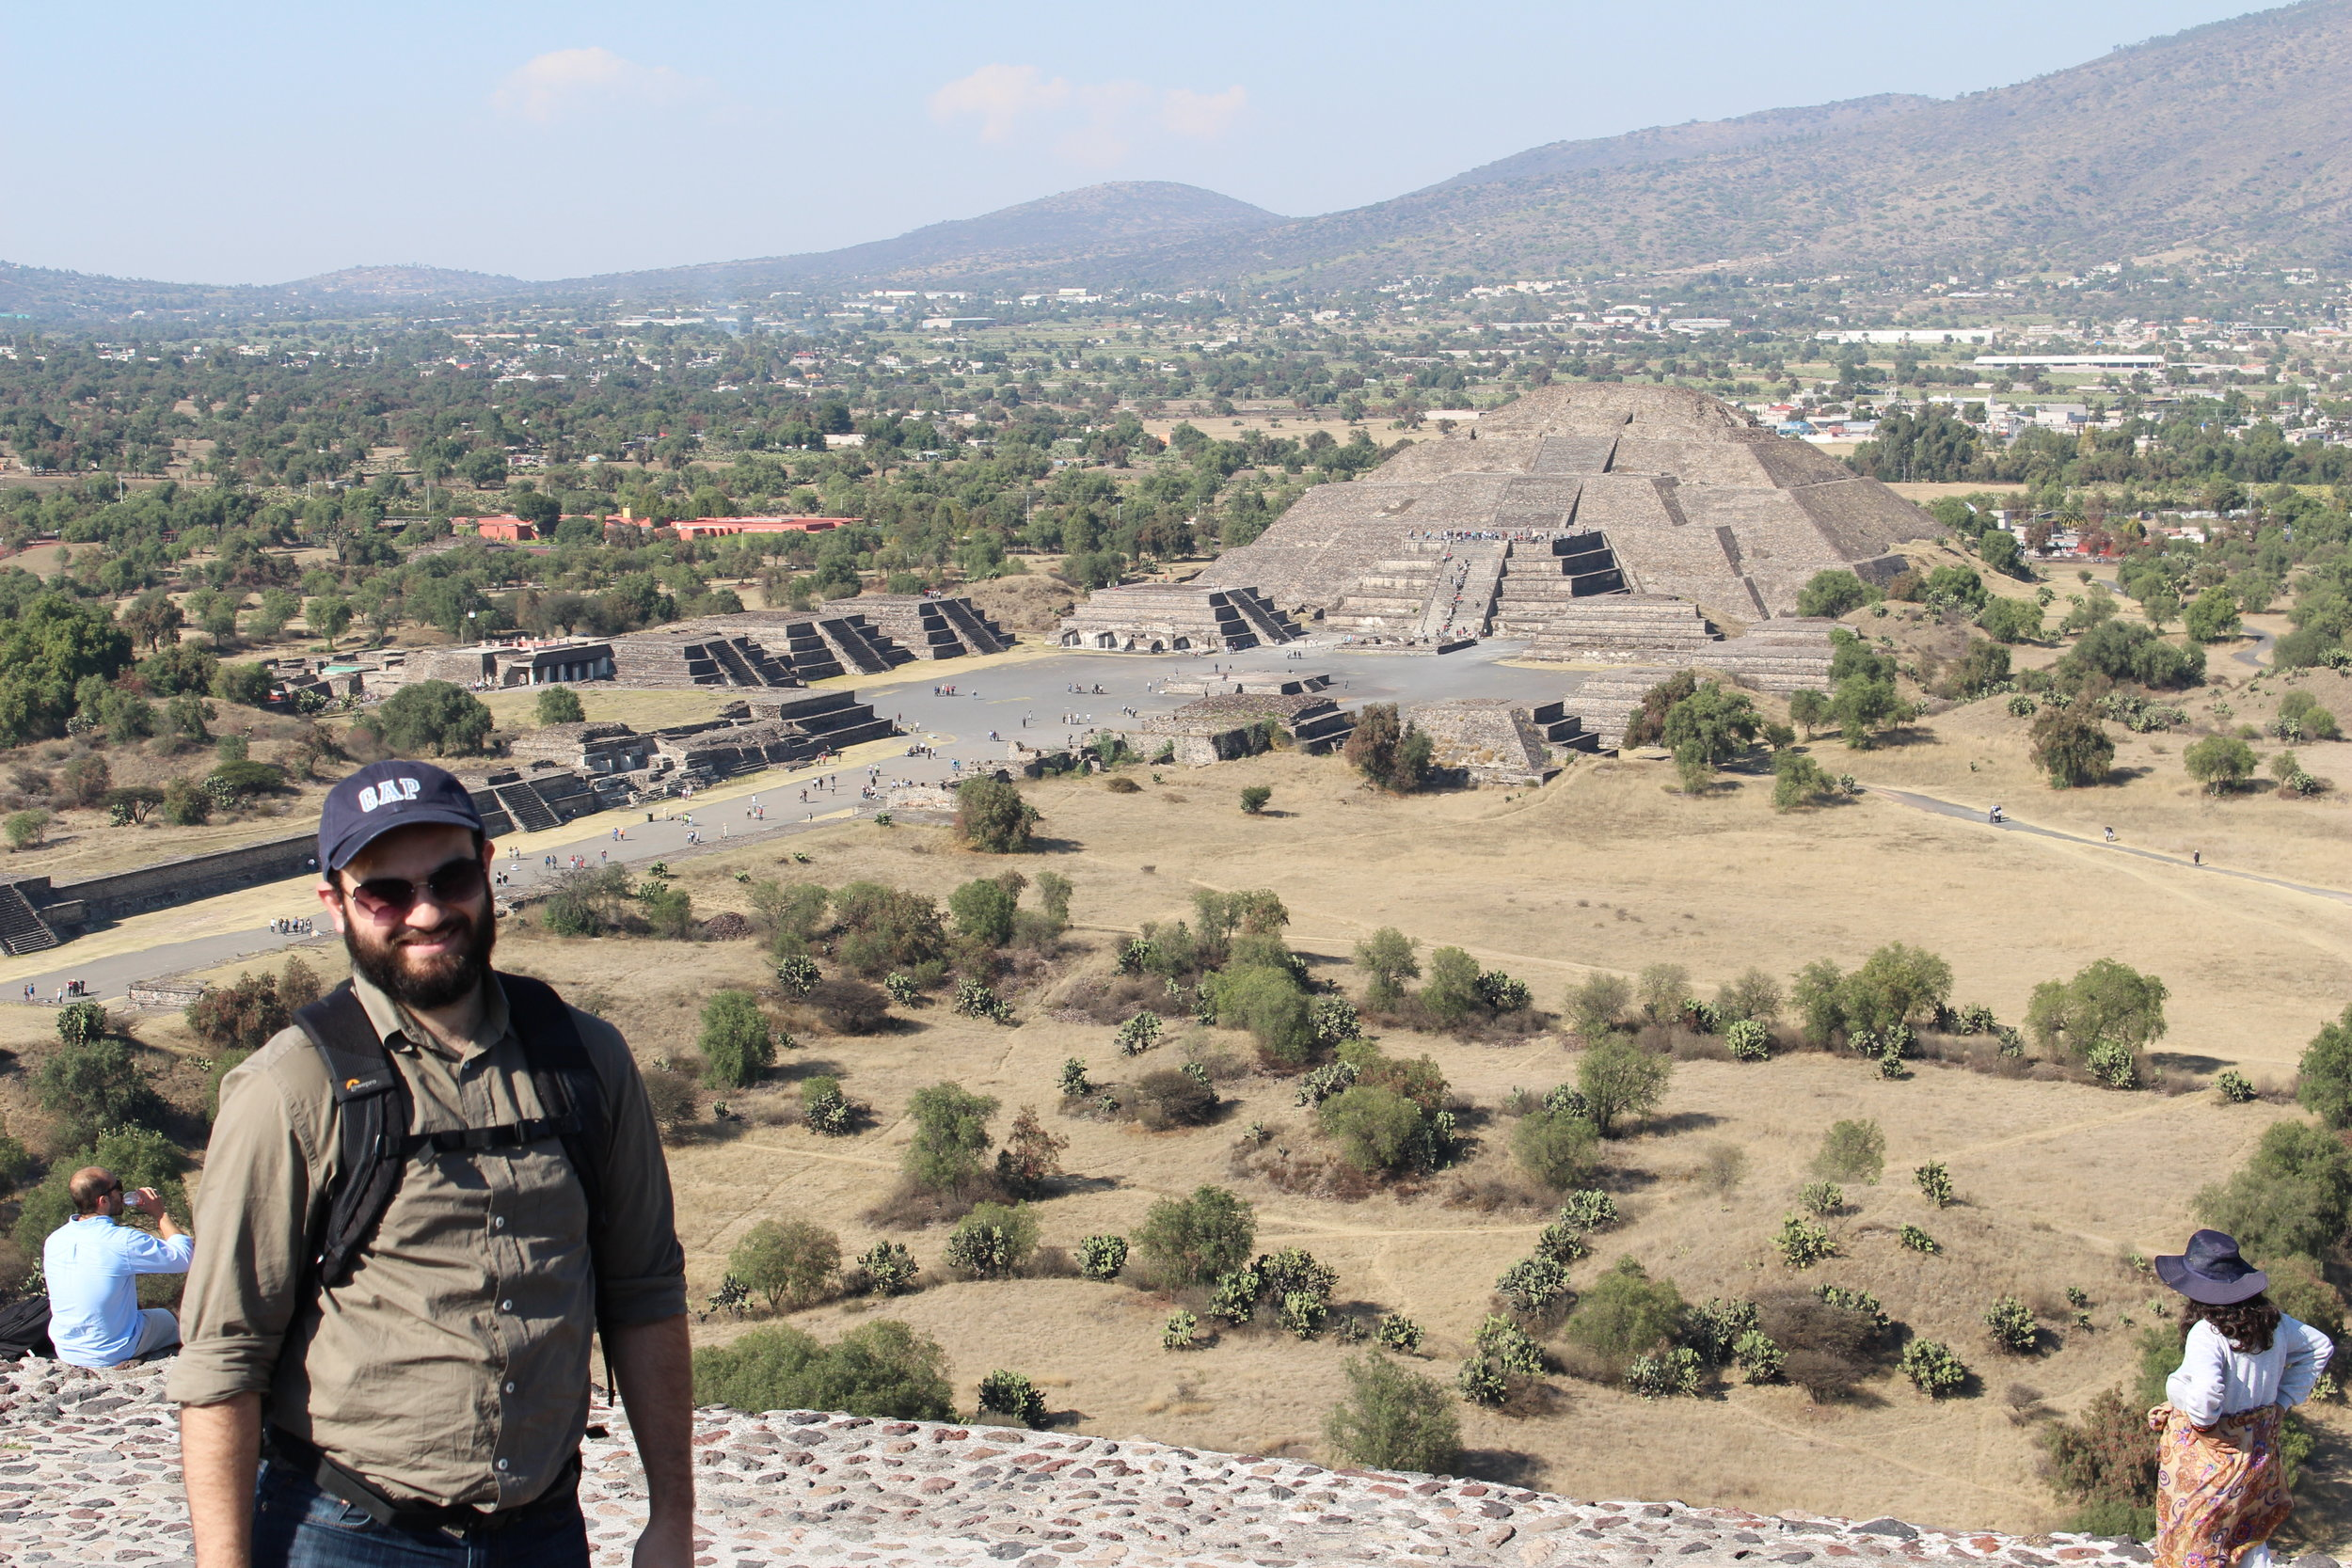 Pyramid of the Moon, as seen from the Pyramid of the Sun, Teotihuacan, Mexico